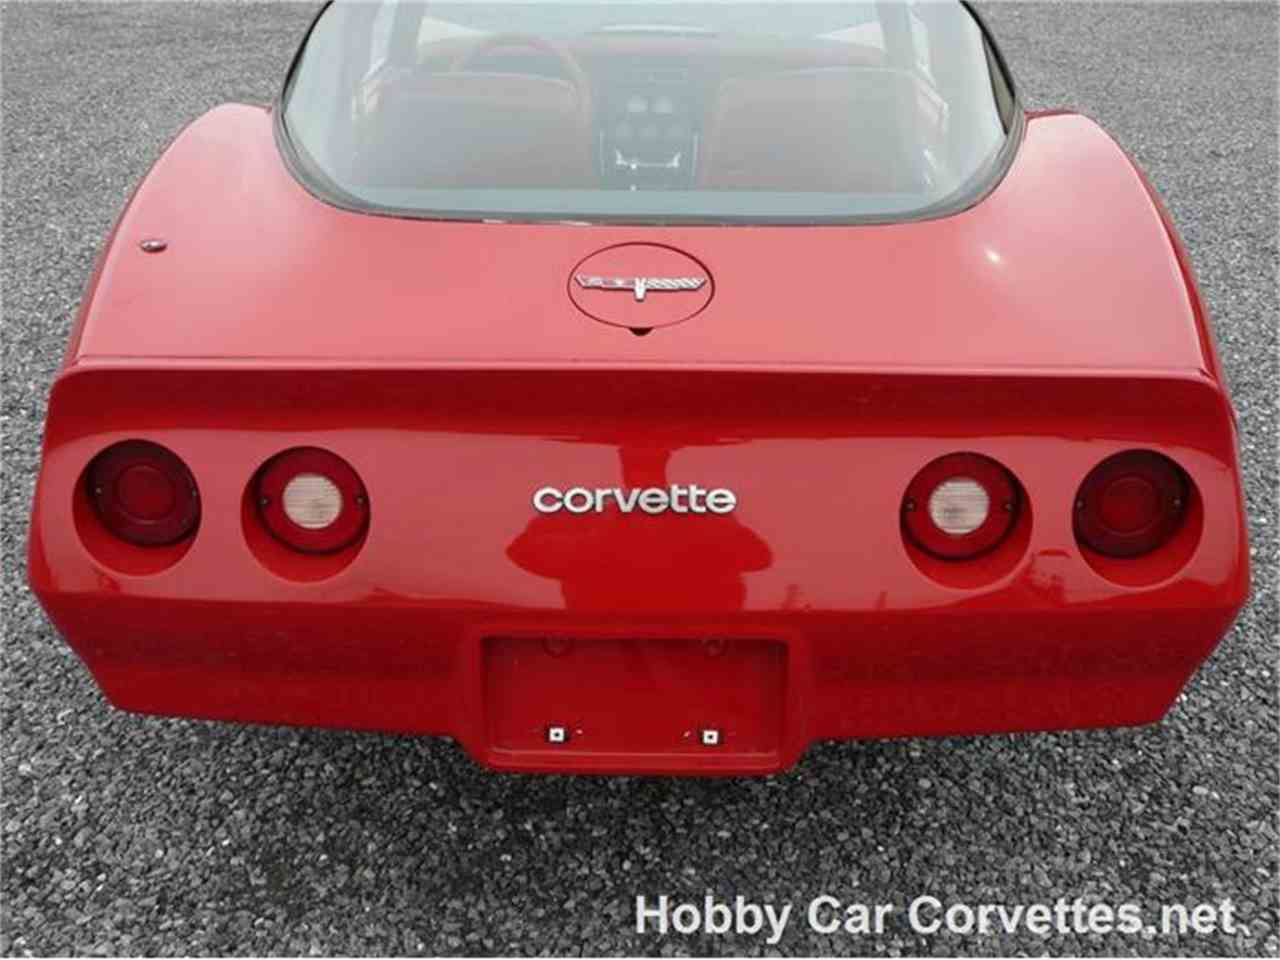 Large Picture of 1981 Corvette located in Pennsylvania - $17,999.00 Offered by Hobby Car Corvettes - DVCX